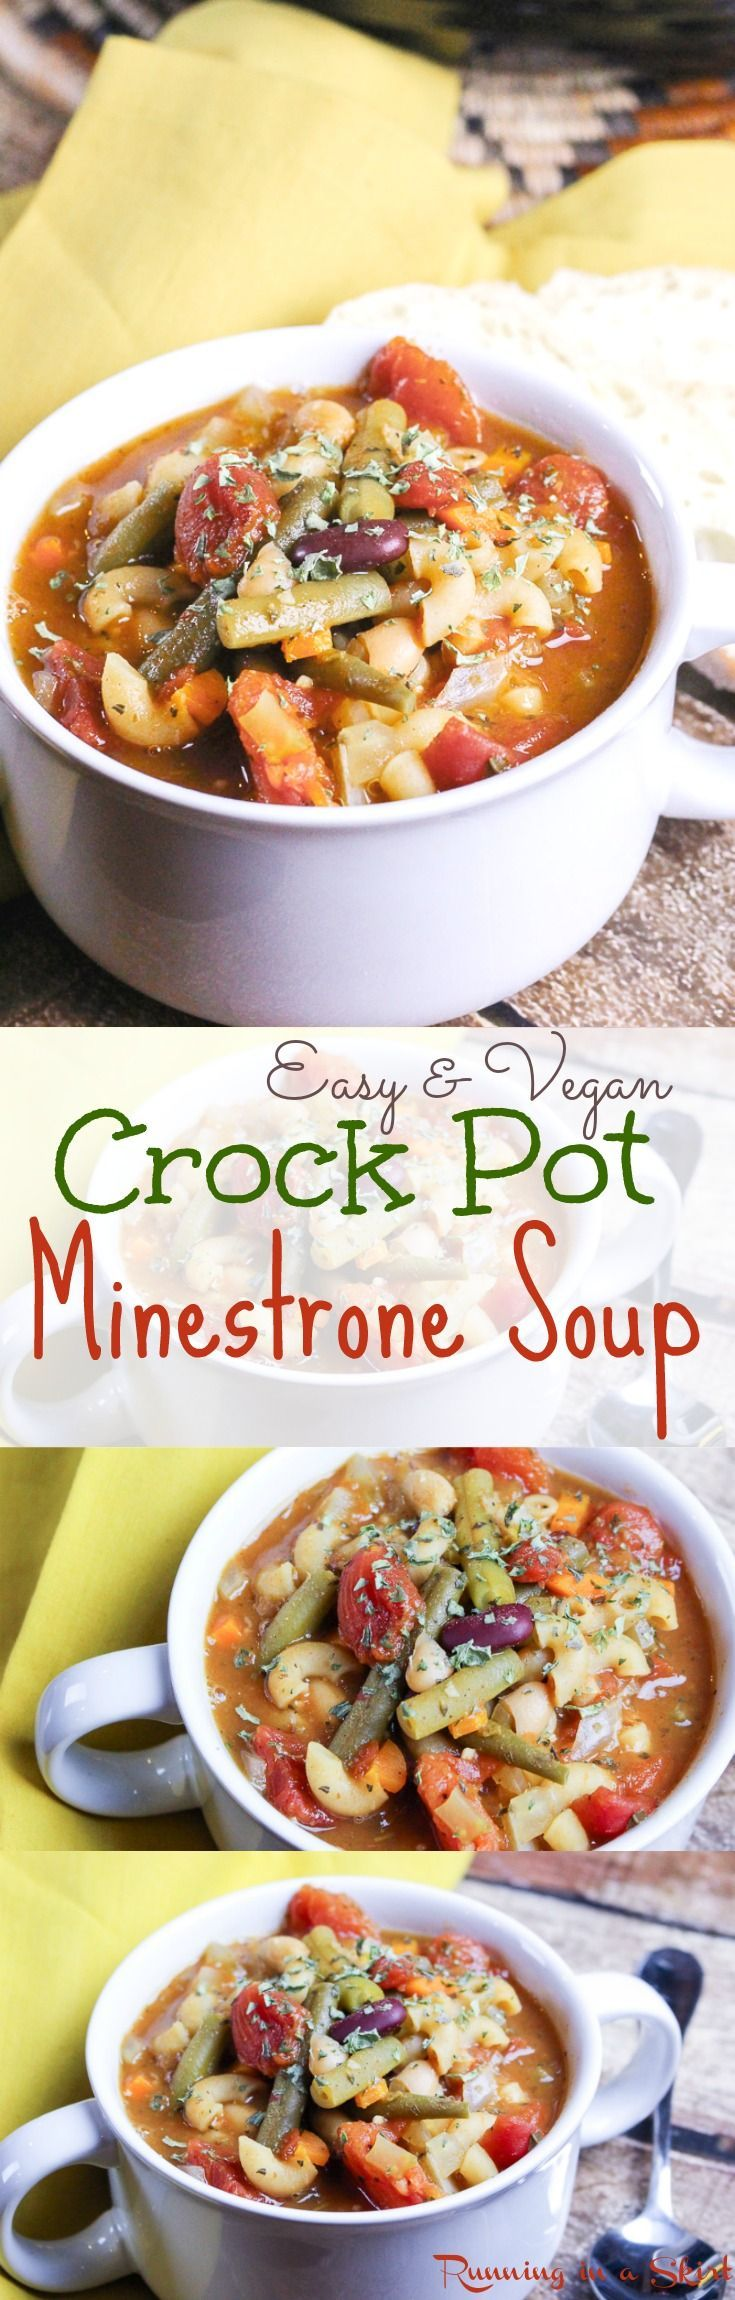 Easy & Vegetarian Crock Pot Minestrone Soup recipe! Healthy, vegetable…